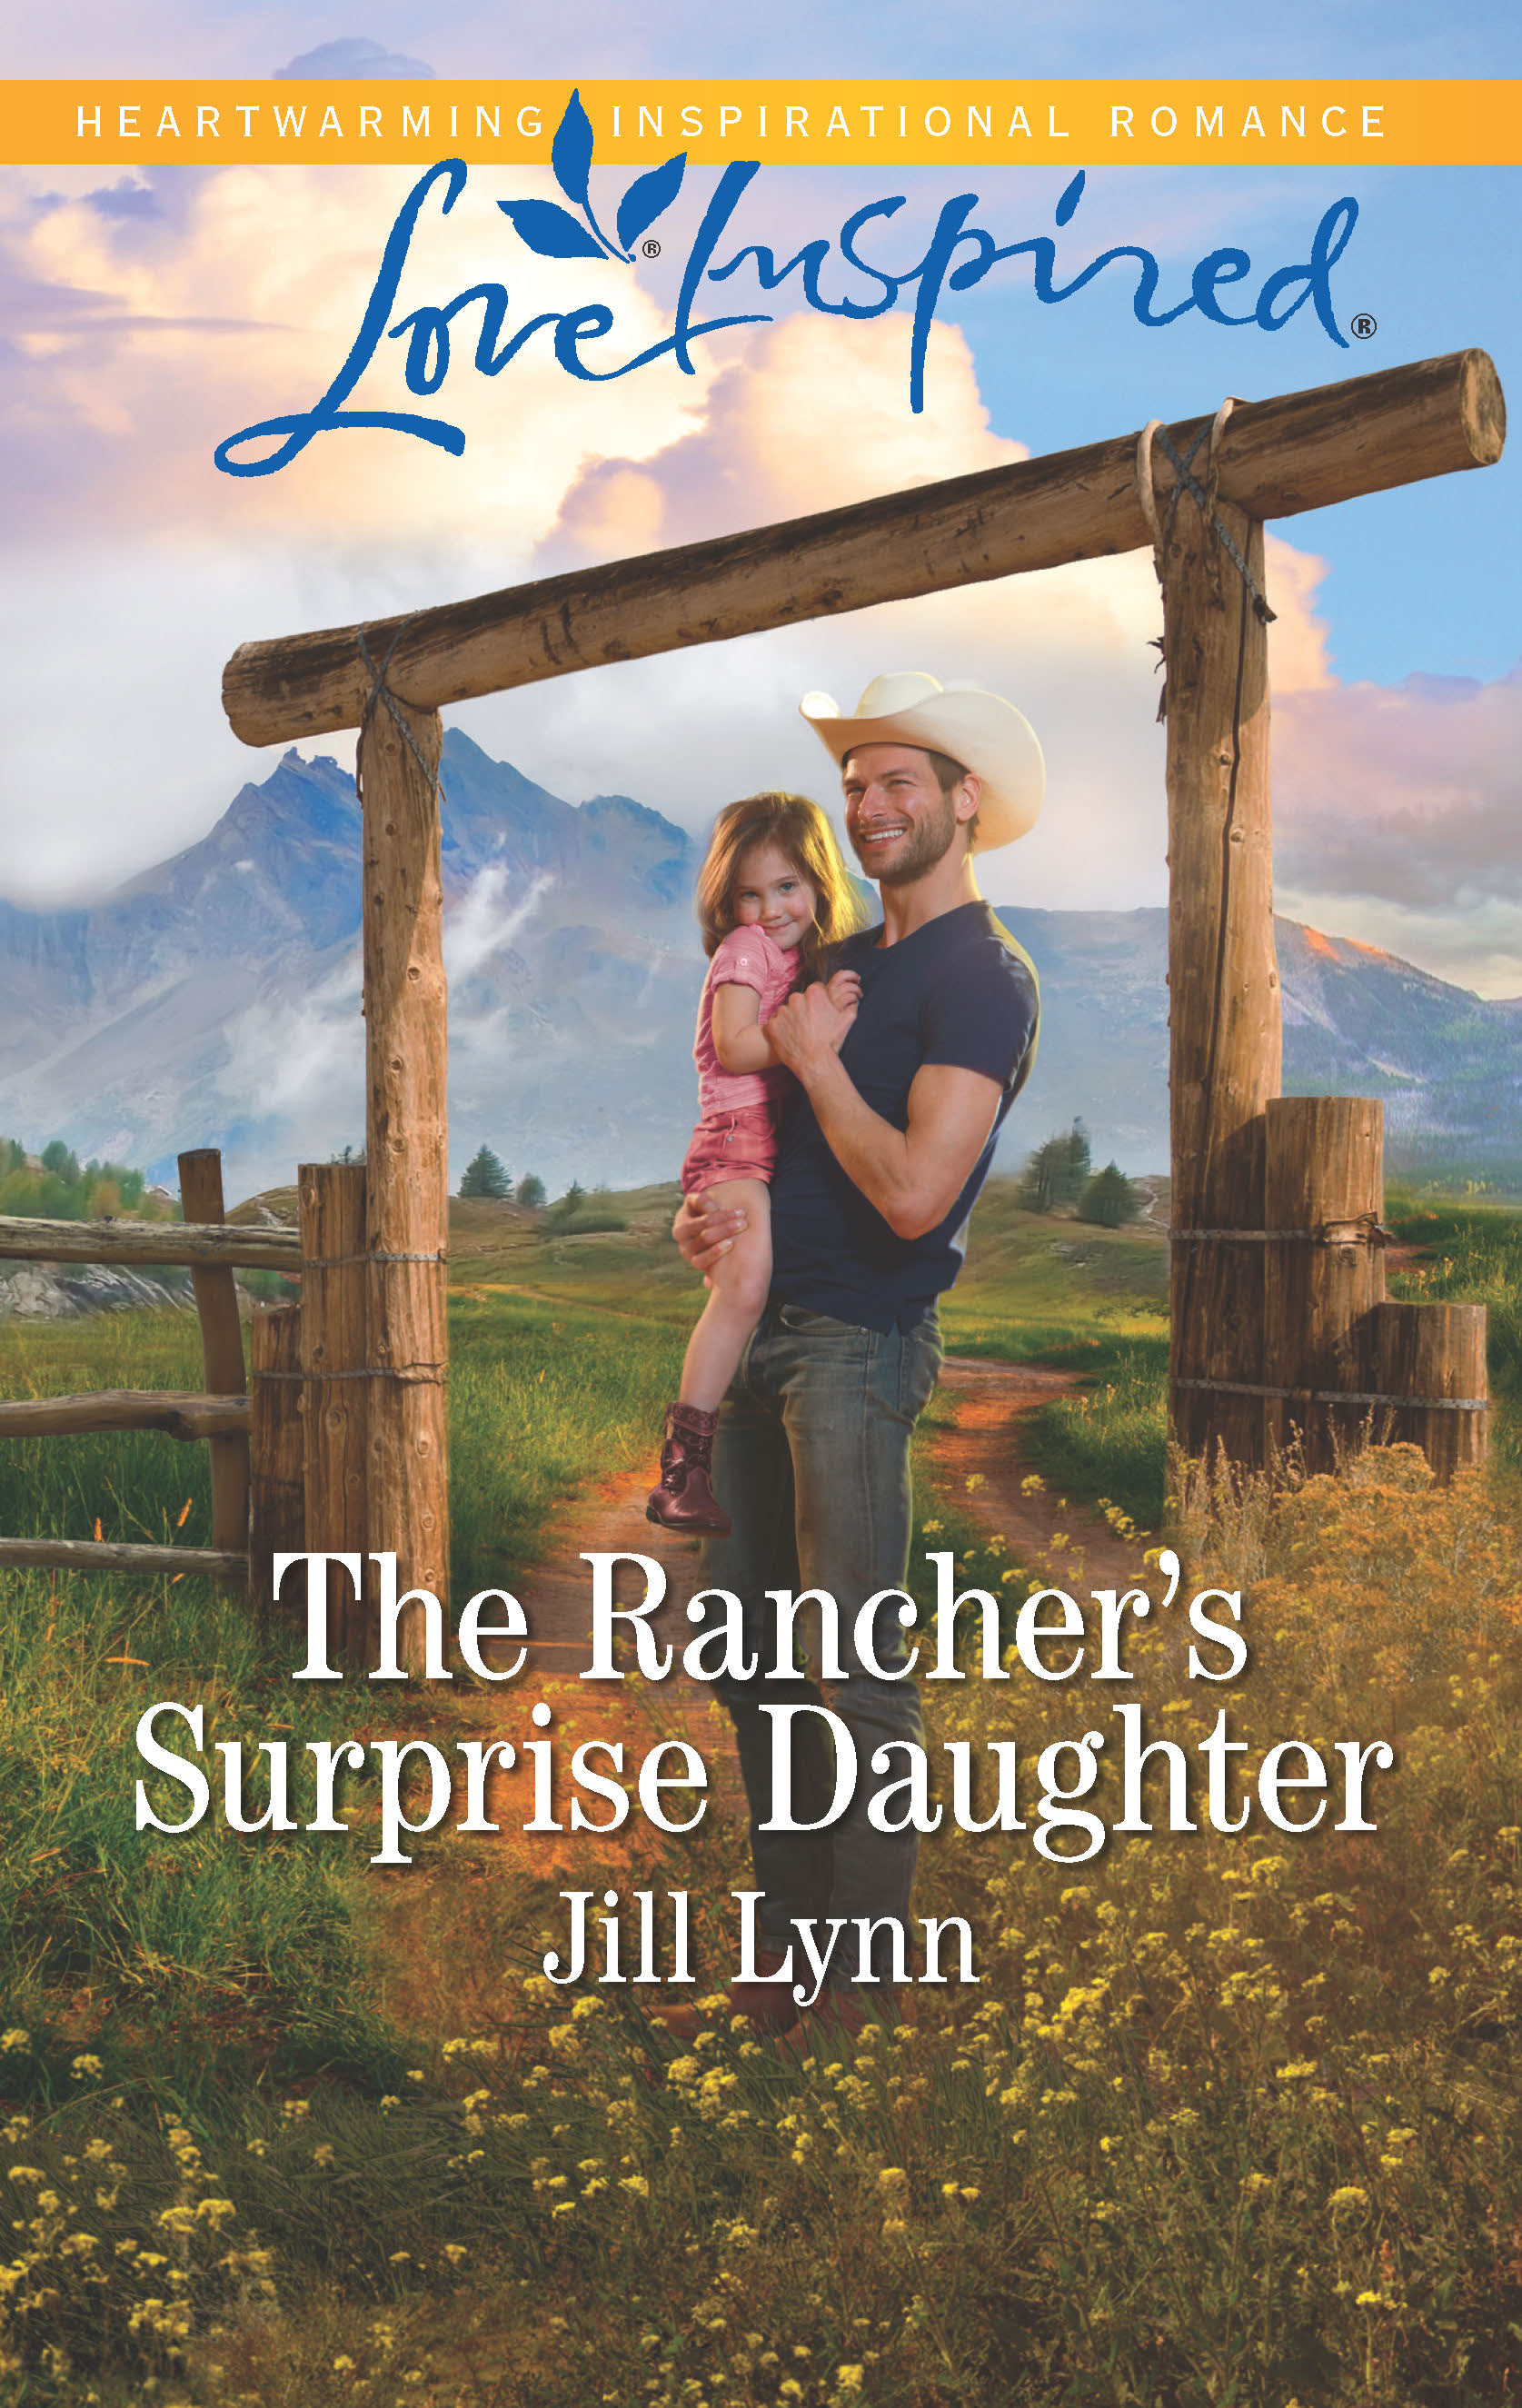 The Rancher's Surprise Daughter.jpg